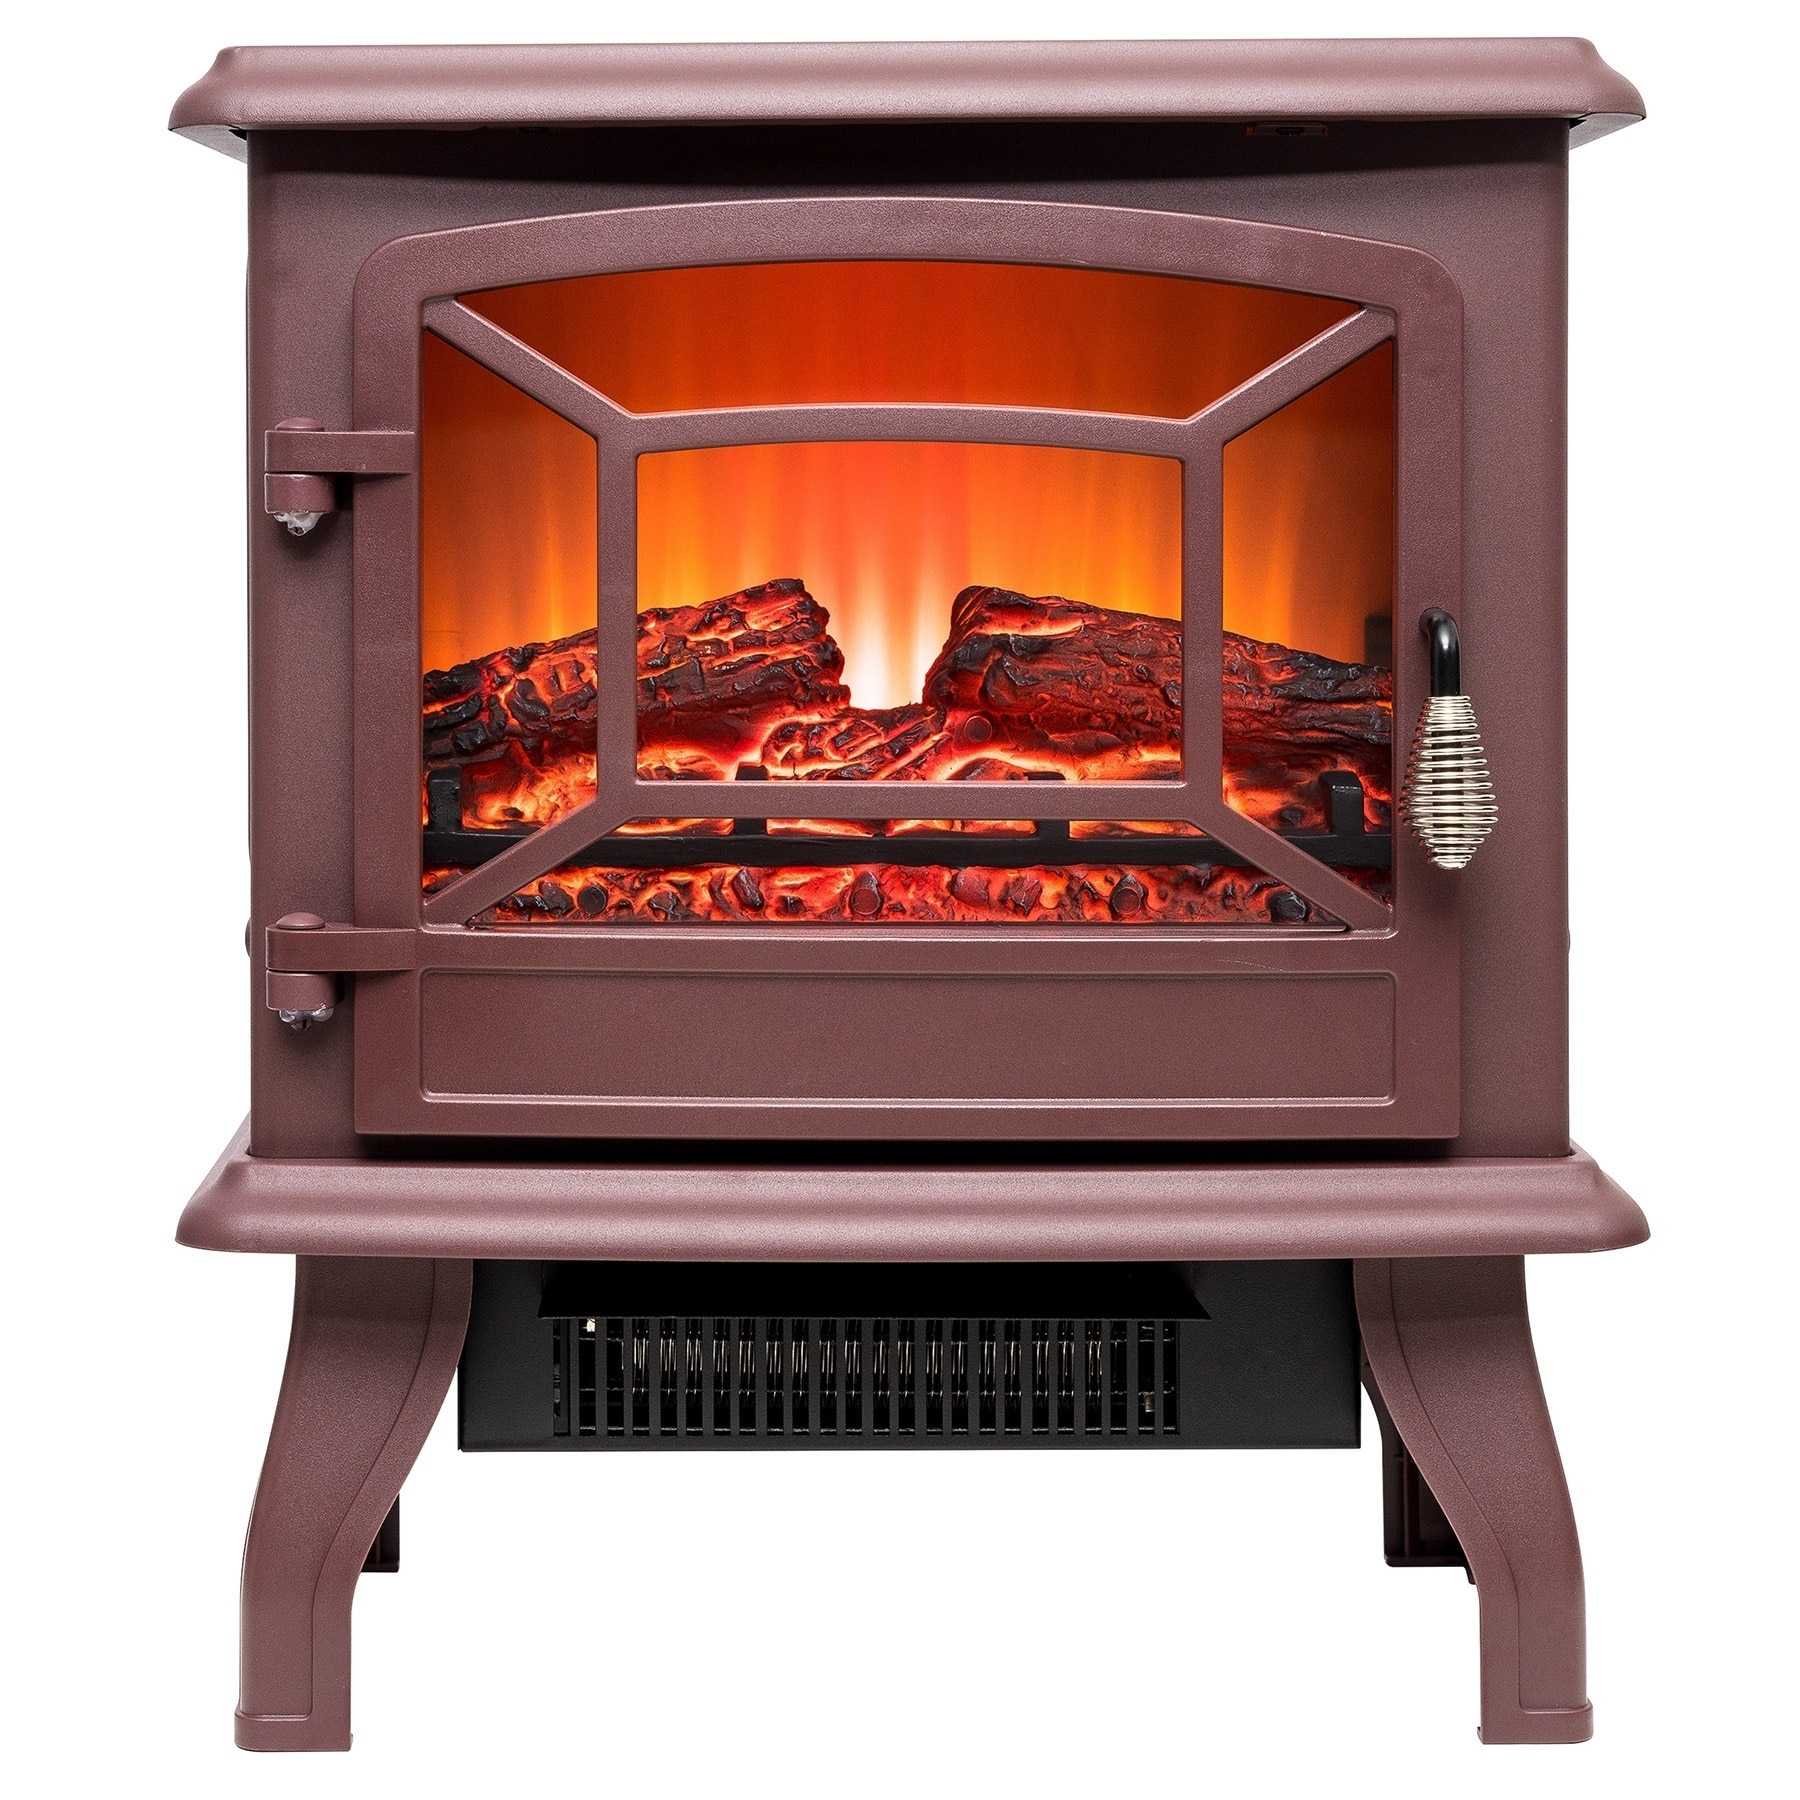 Shop Akdy Fp0079 17 Freestanding Portable Electric Fireplace 2